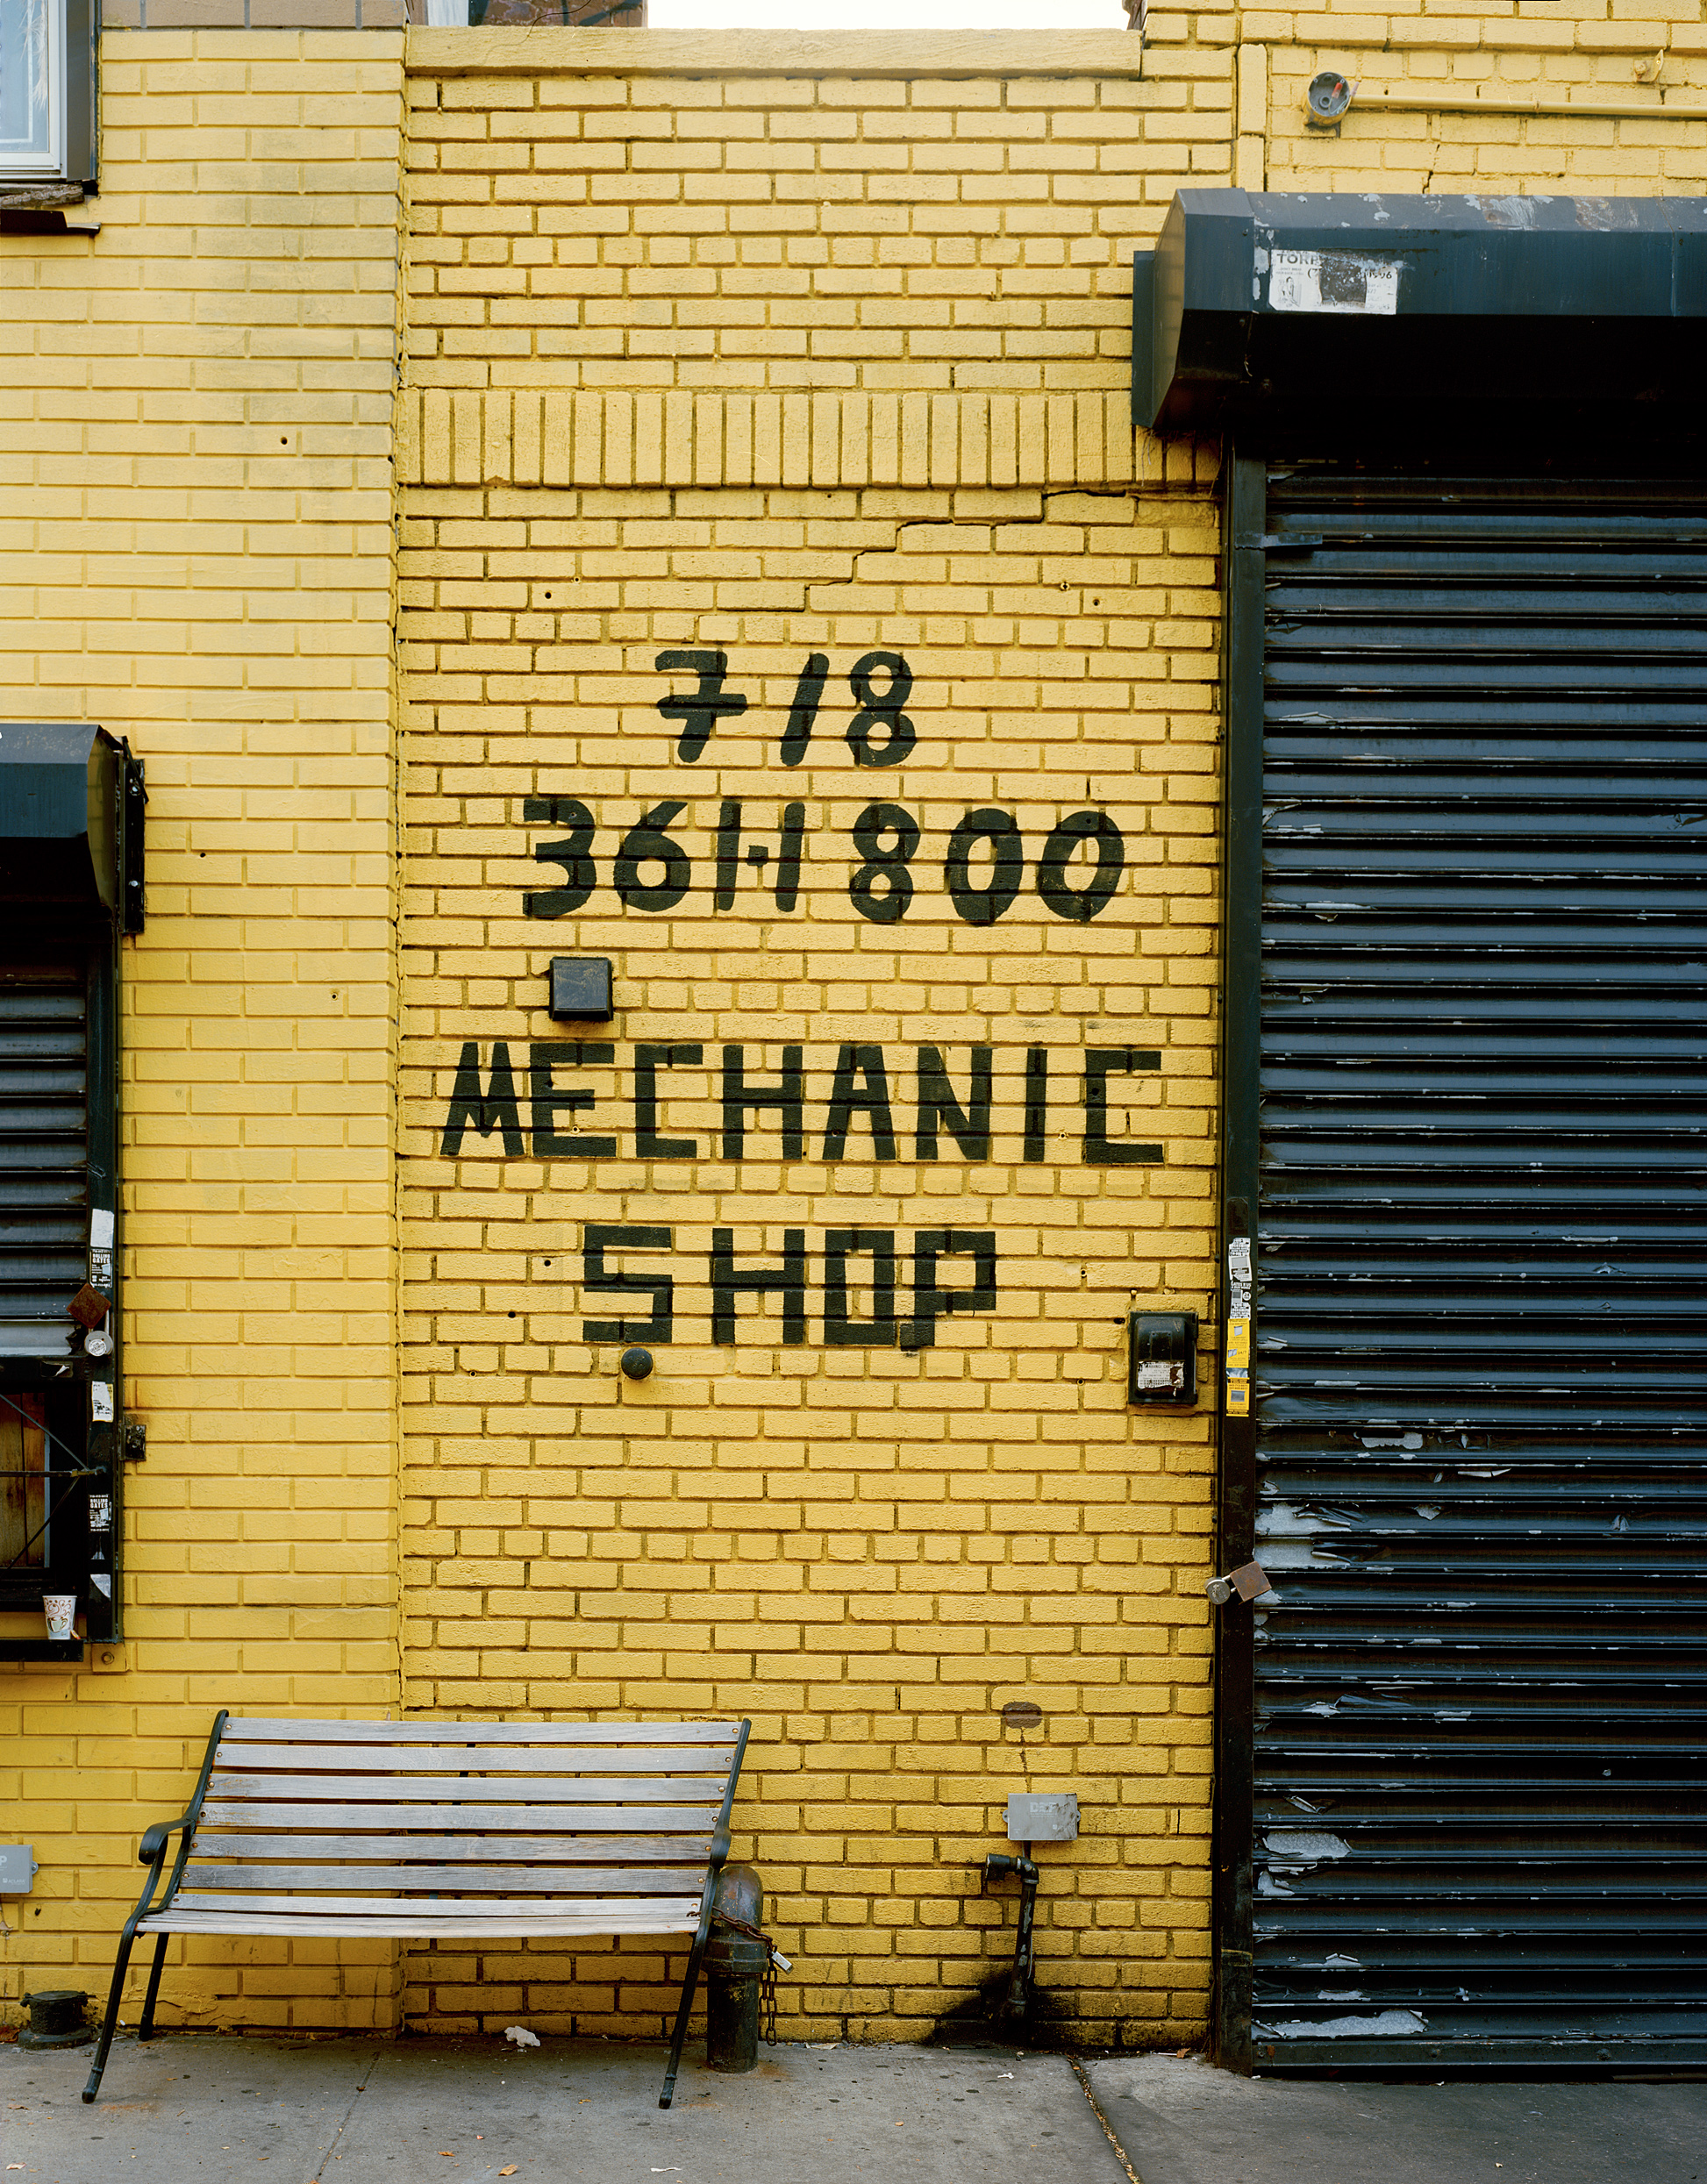 Mechanic Shop, Astoria